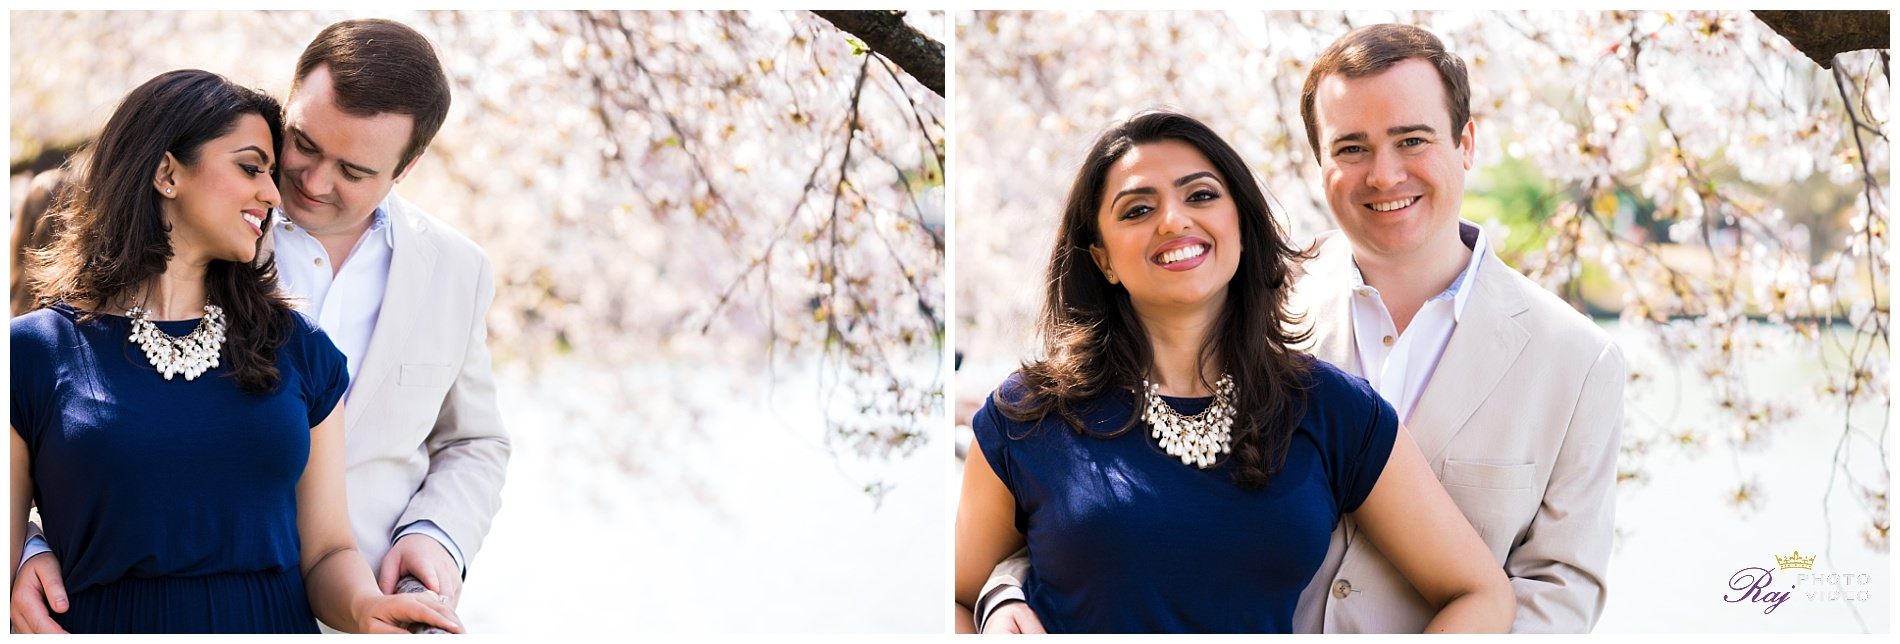 National-Cherry-Blossom-Festival-Washington-DC-Engagement-Shoot-Aditi-Peter-5.jpg